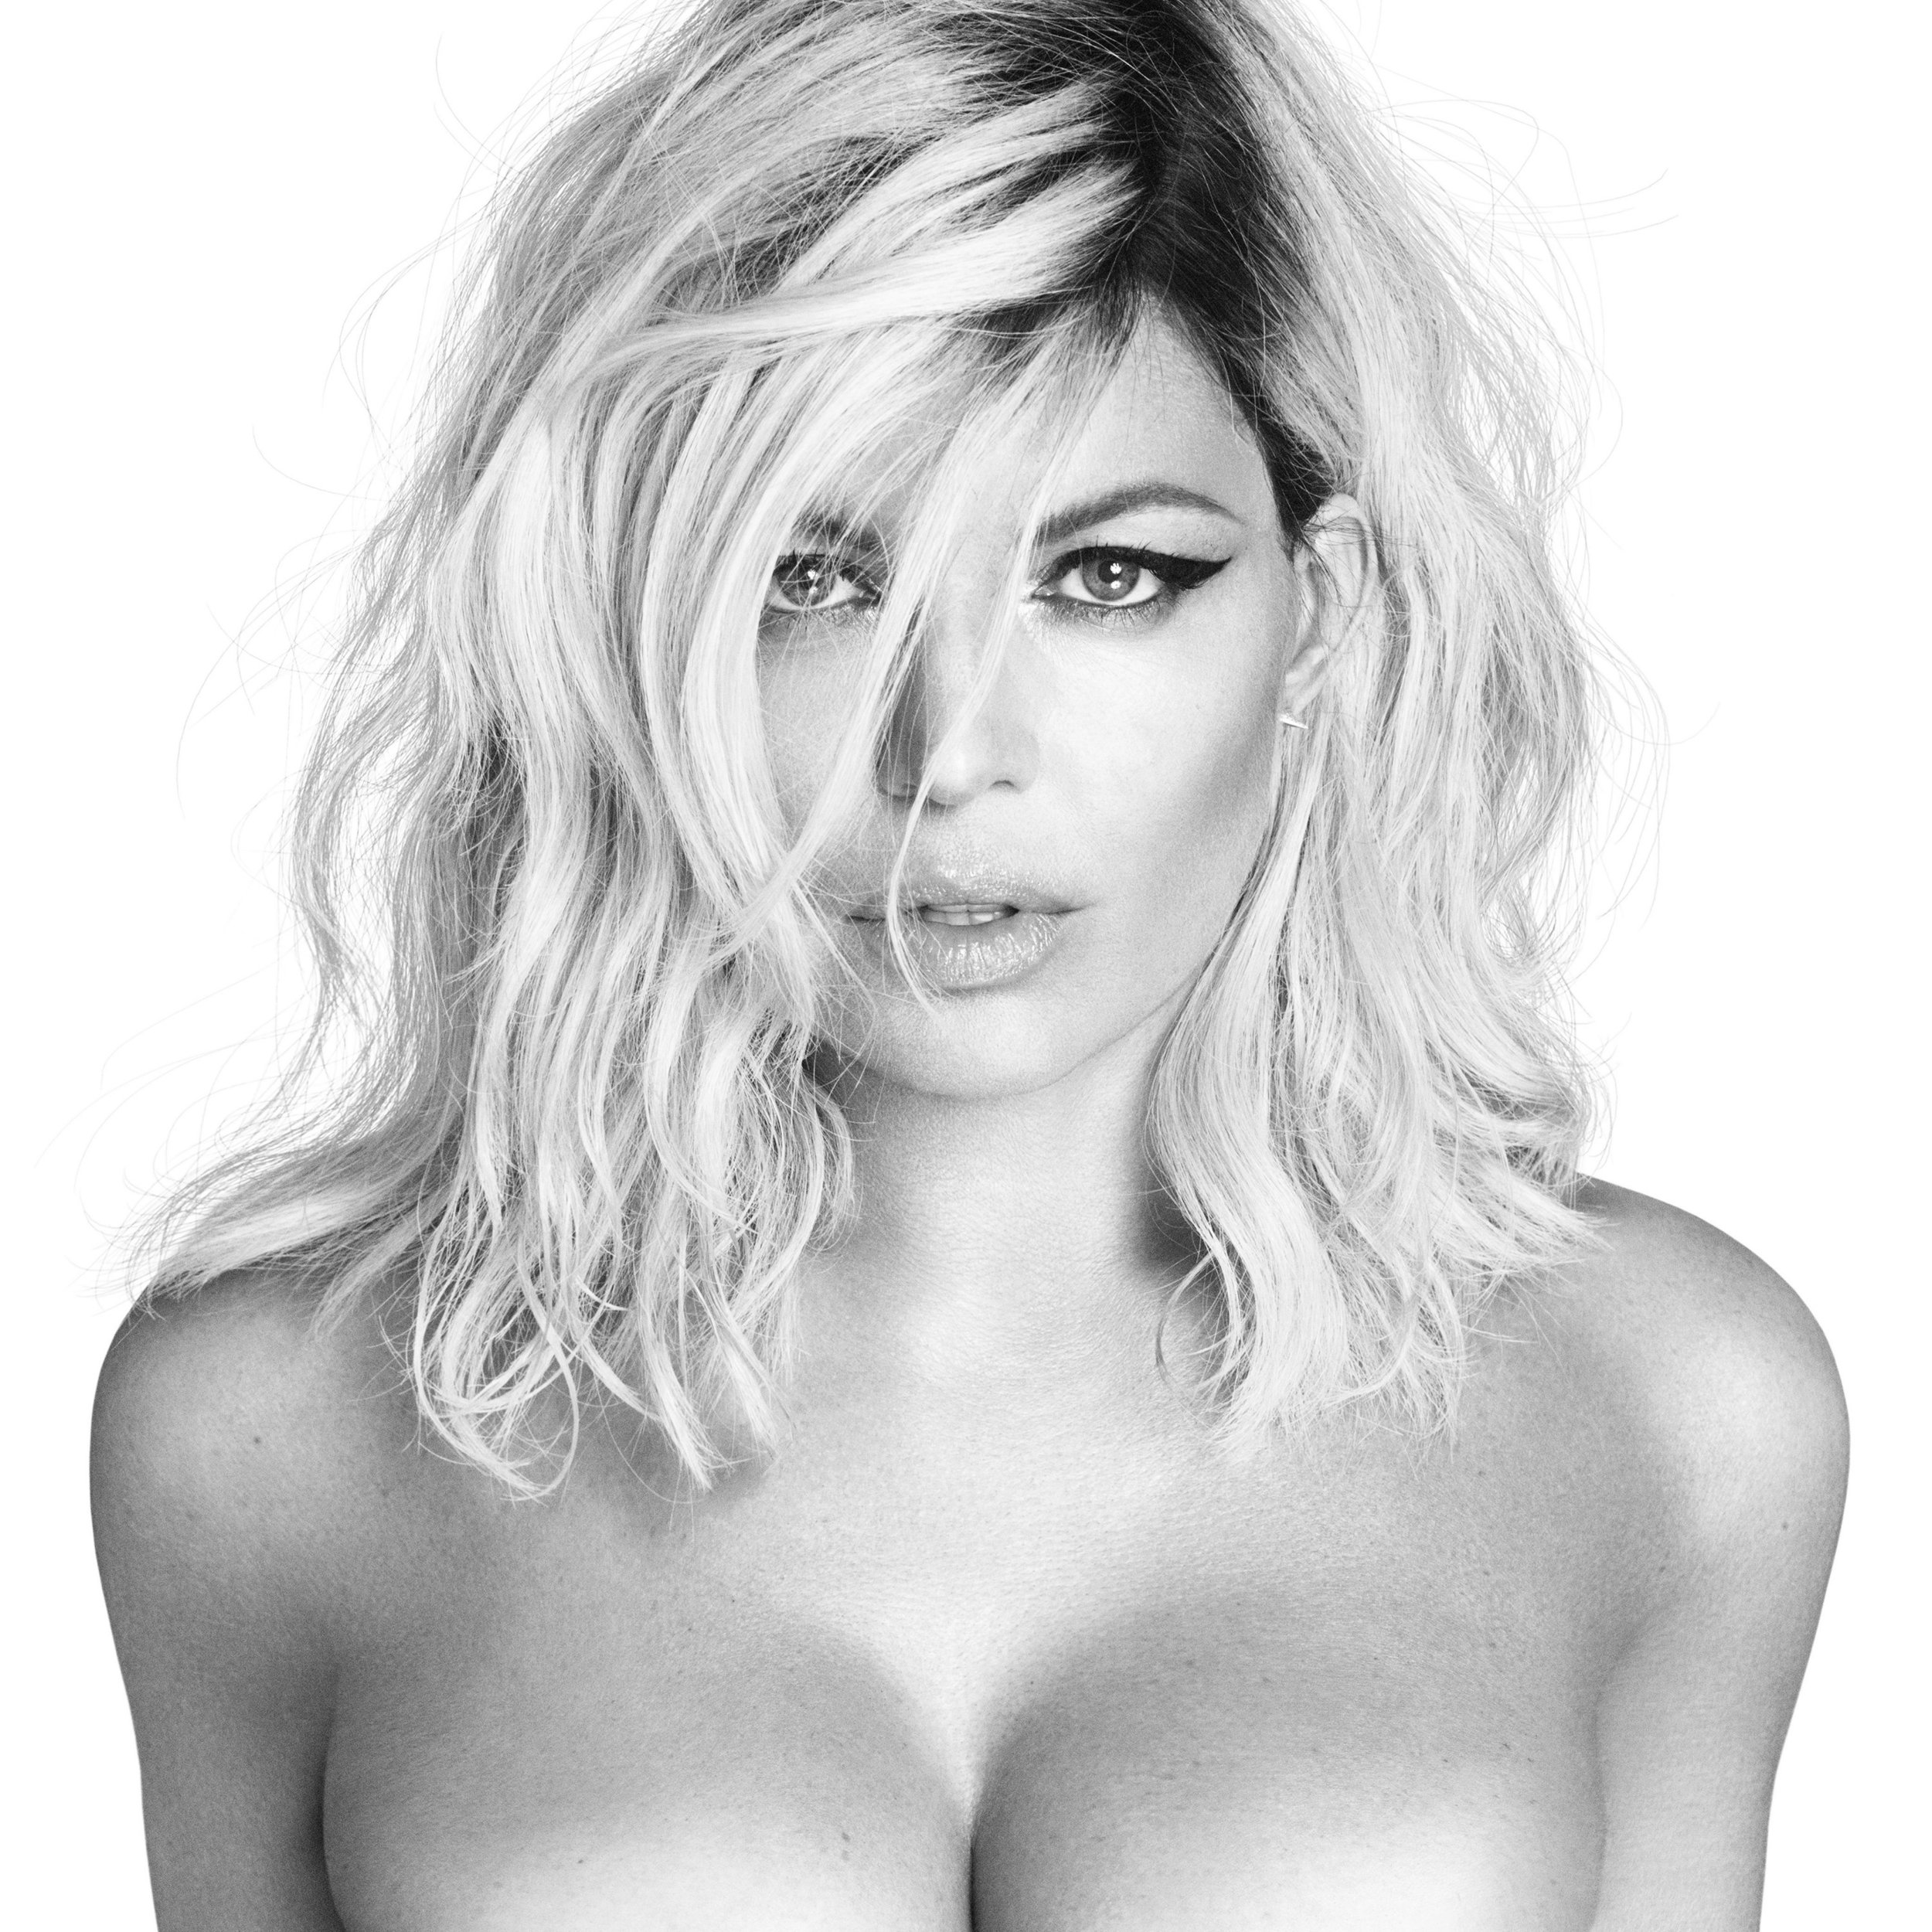 Has fergie ever posed nude